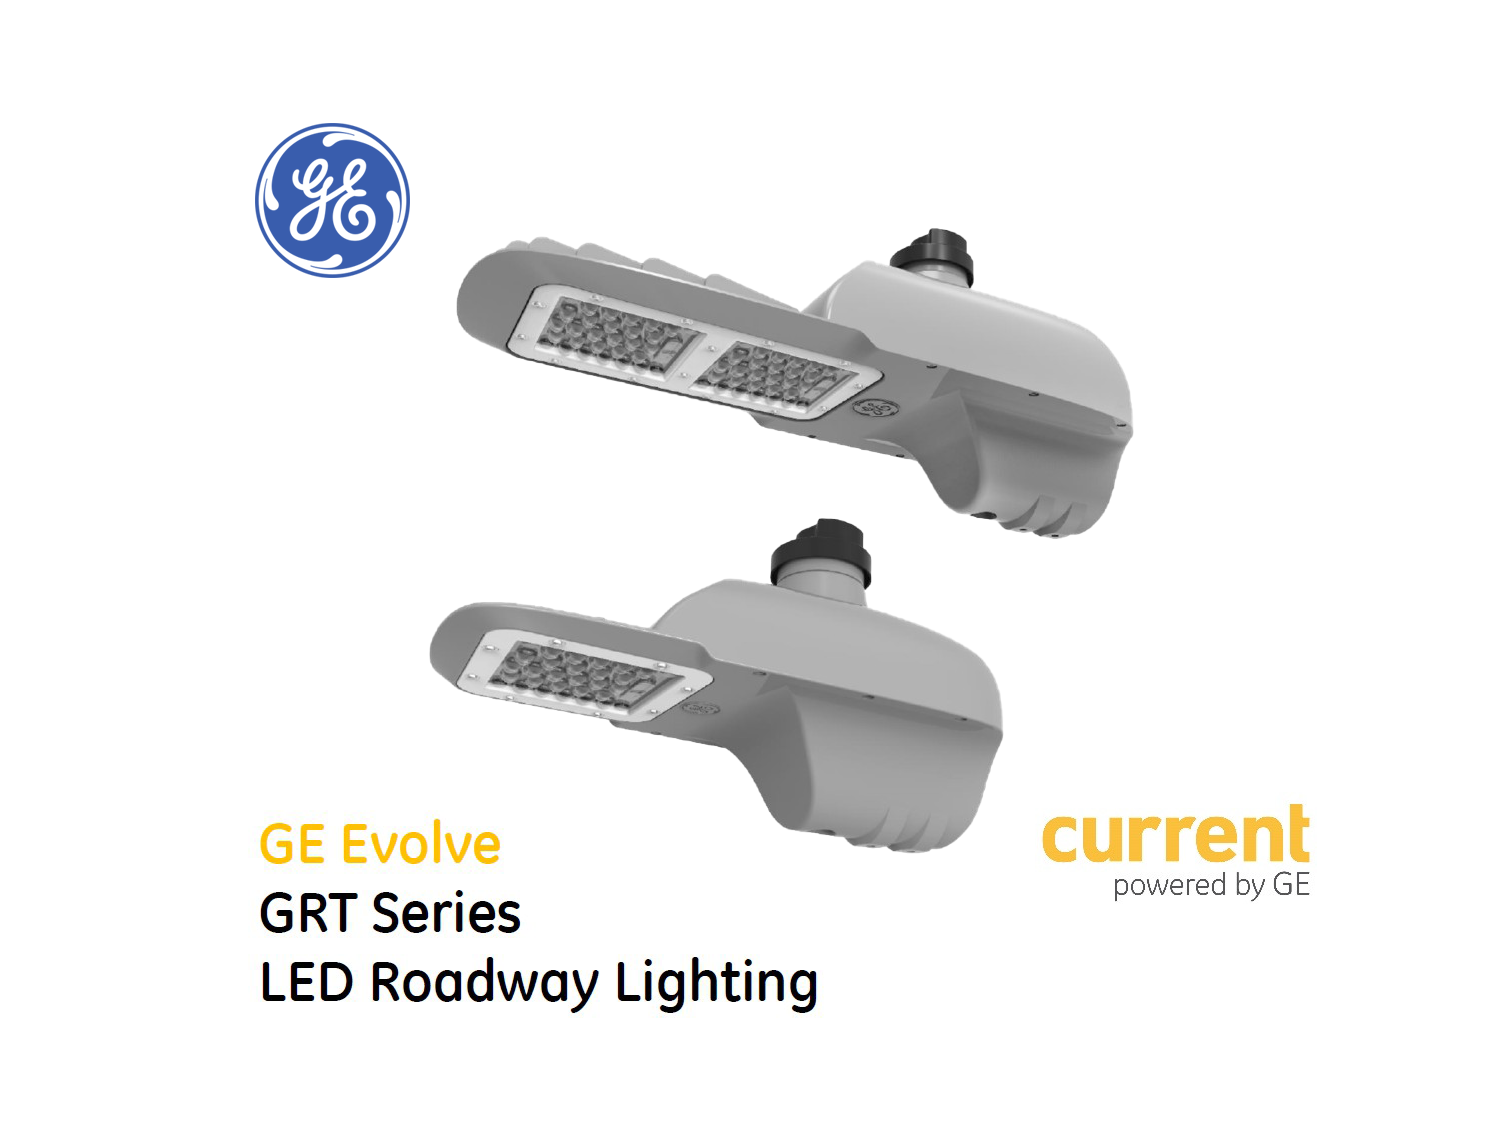 GE Evolve LED Roadway Lighting GRT Series